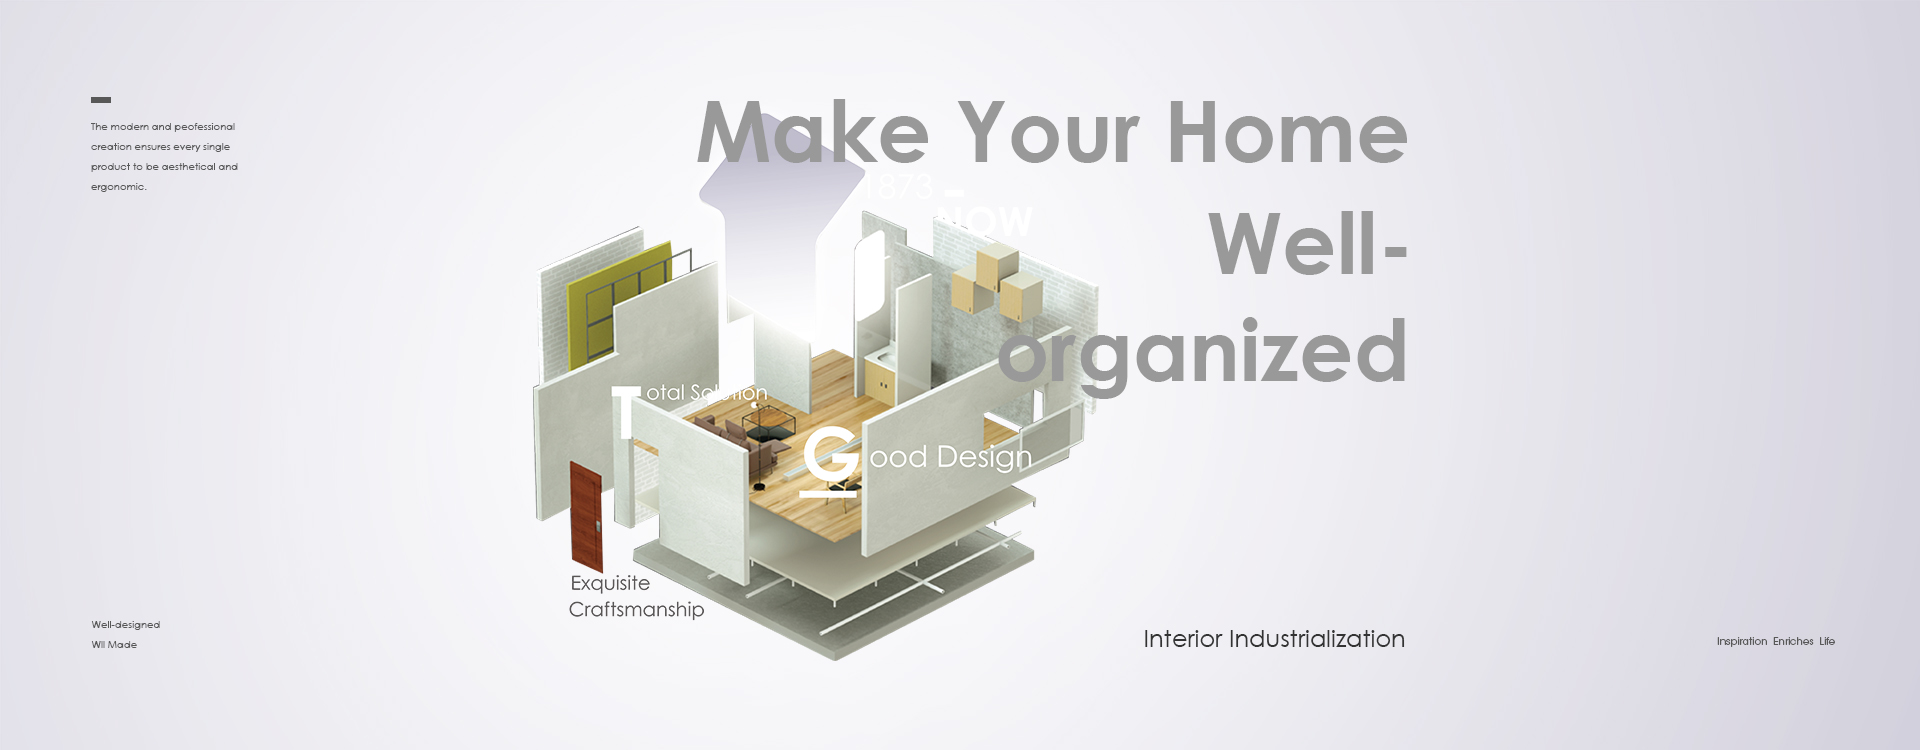 Make Your Home Well-organized